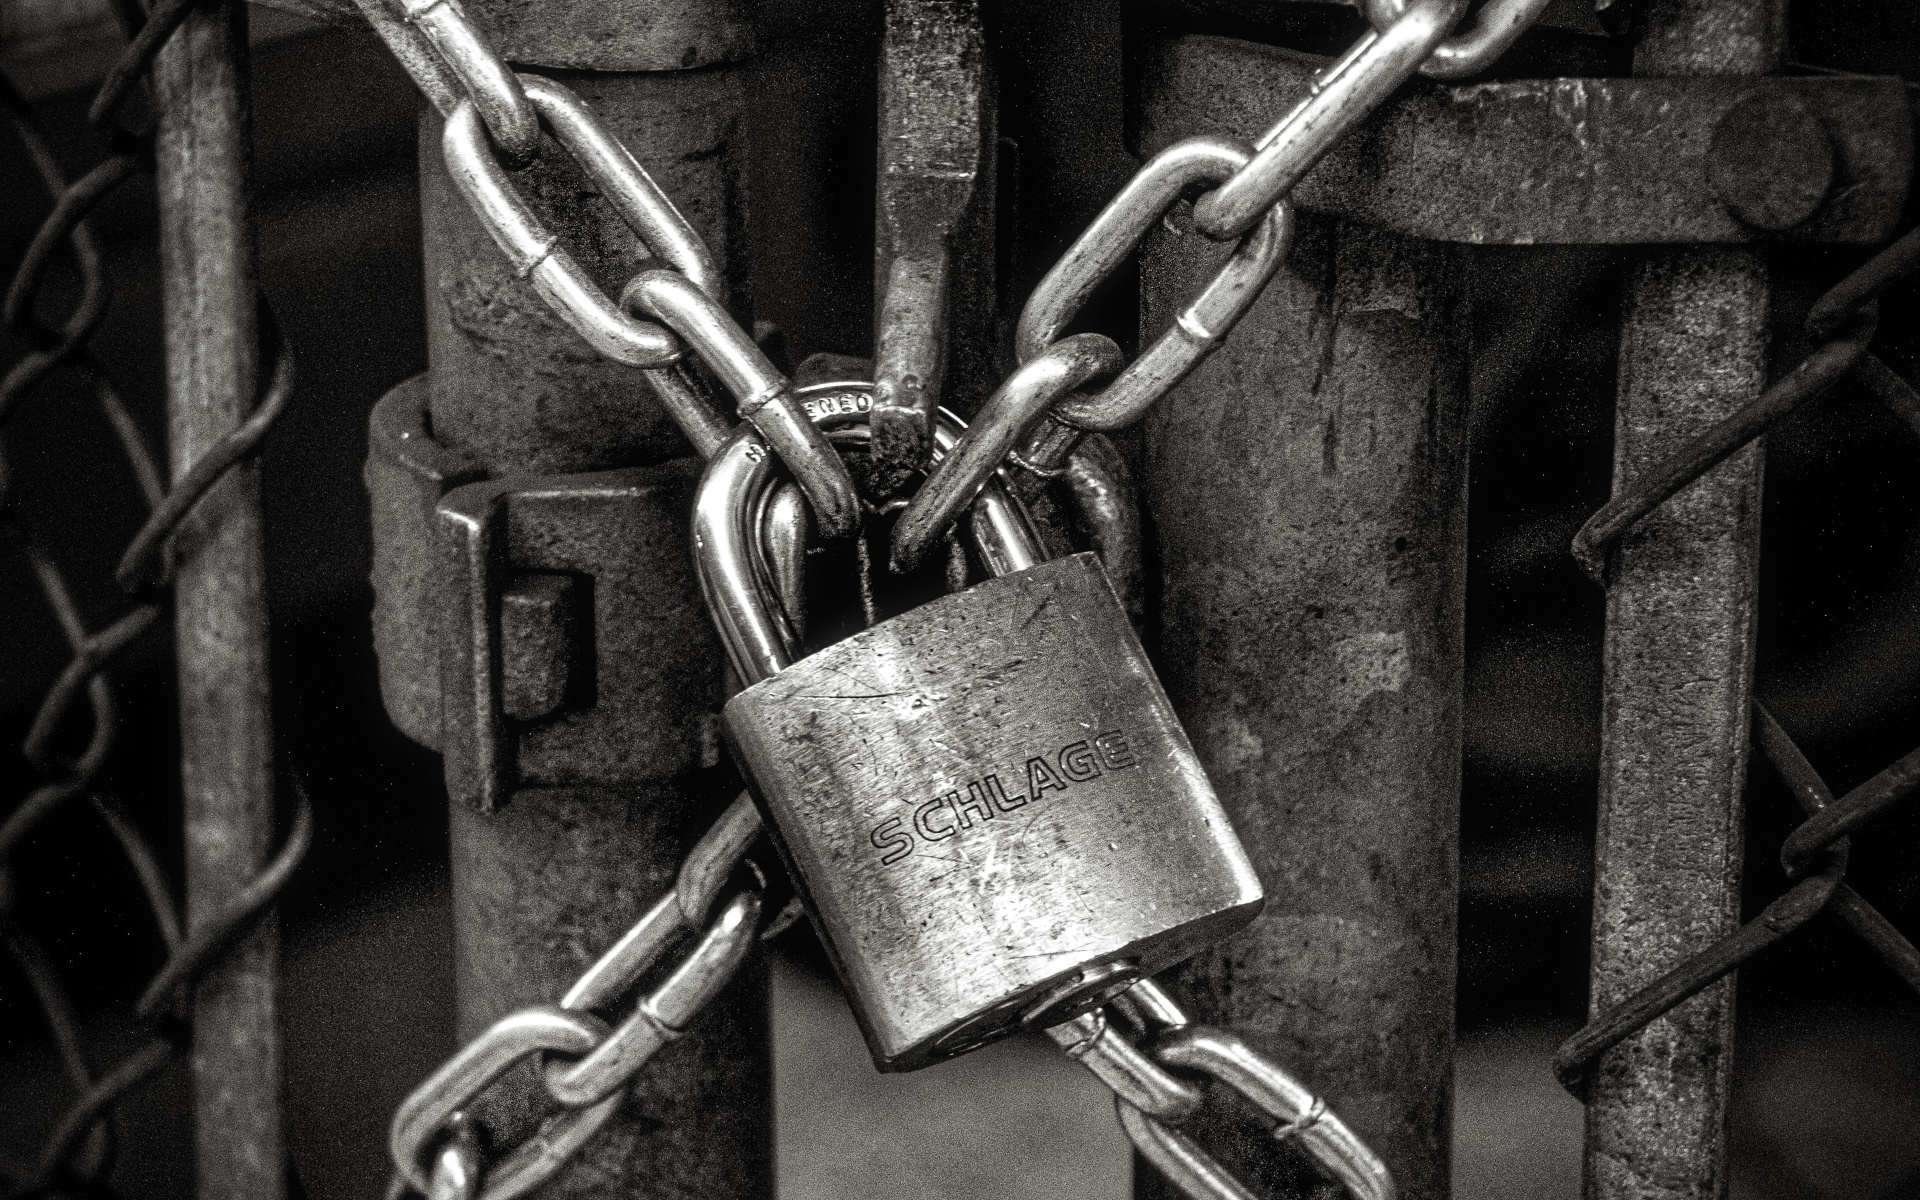 Iron Gate with a Steel Padlock Locking Chains Together